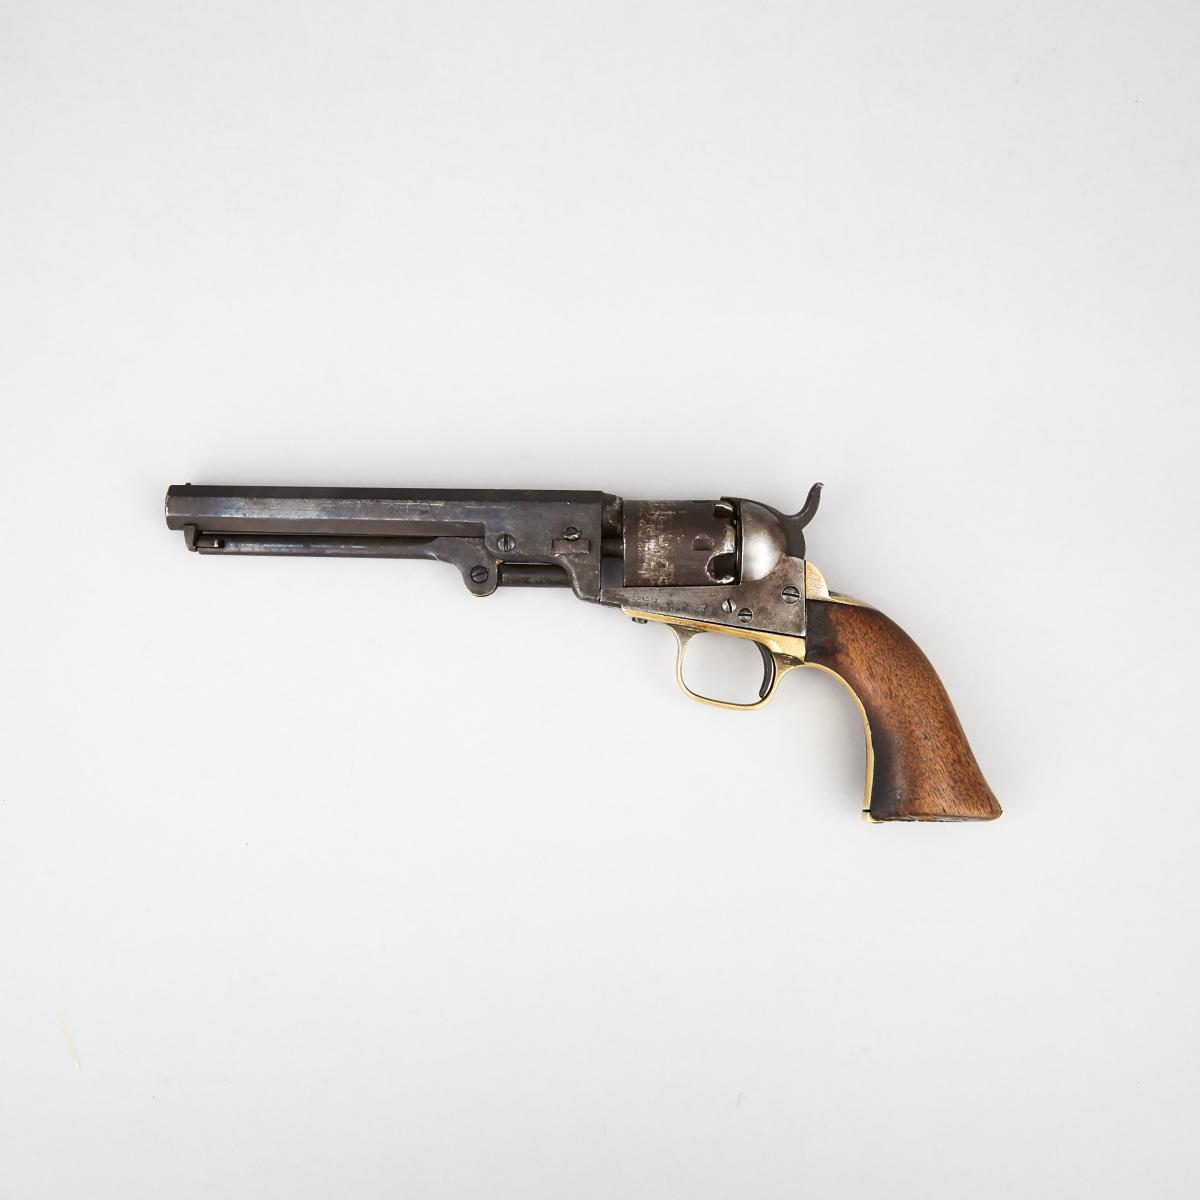 Colt Model 1851 'The Dandy First' National Guard Presentation Navy Revolver, 1863